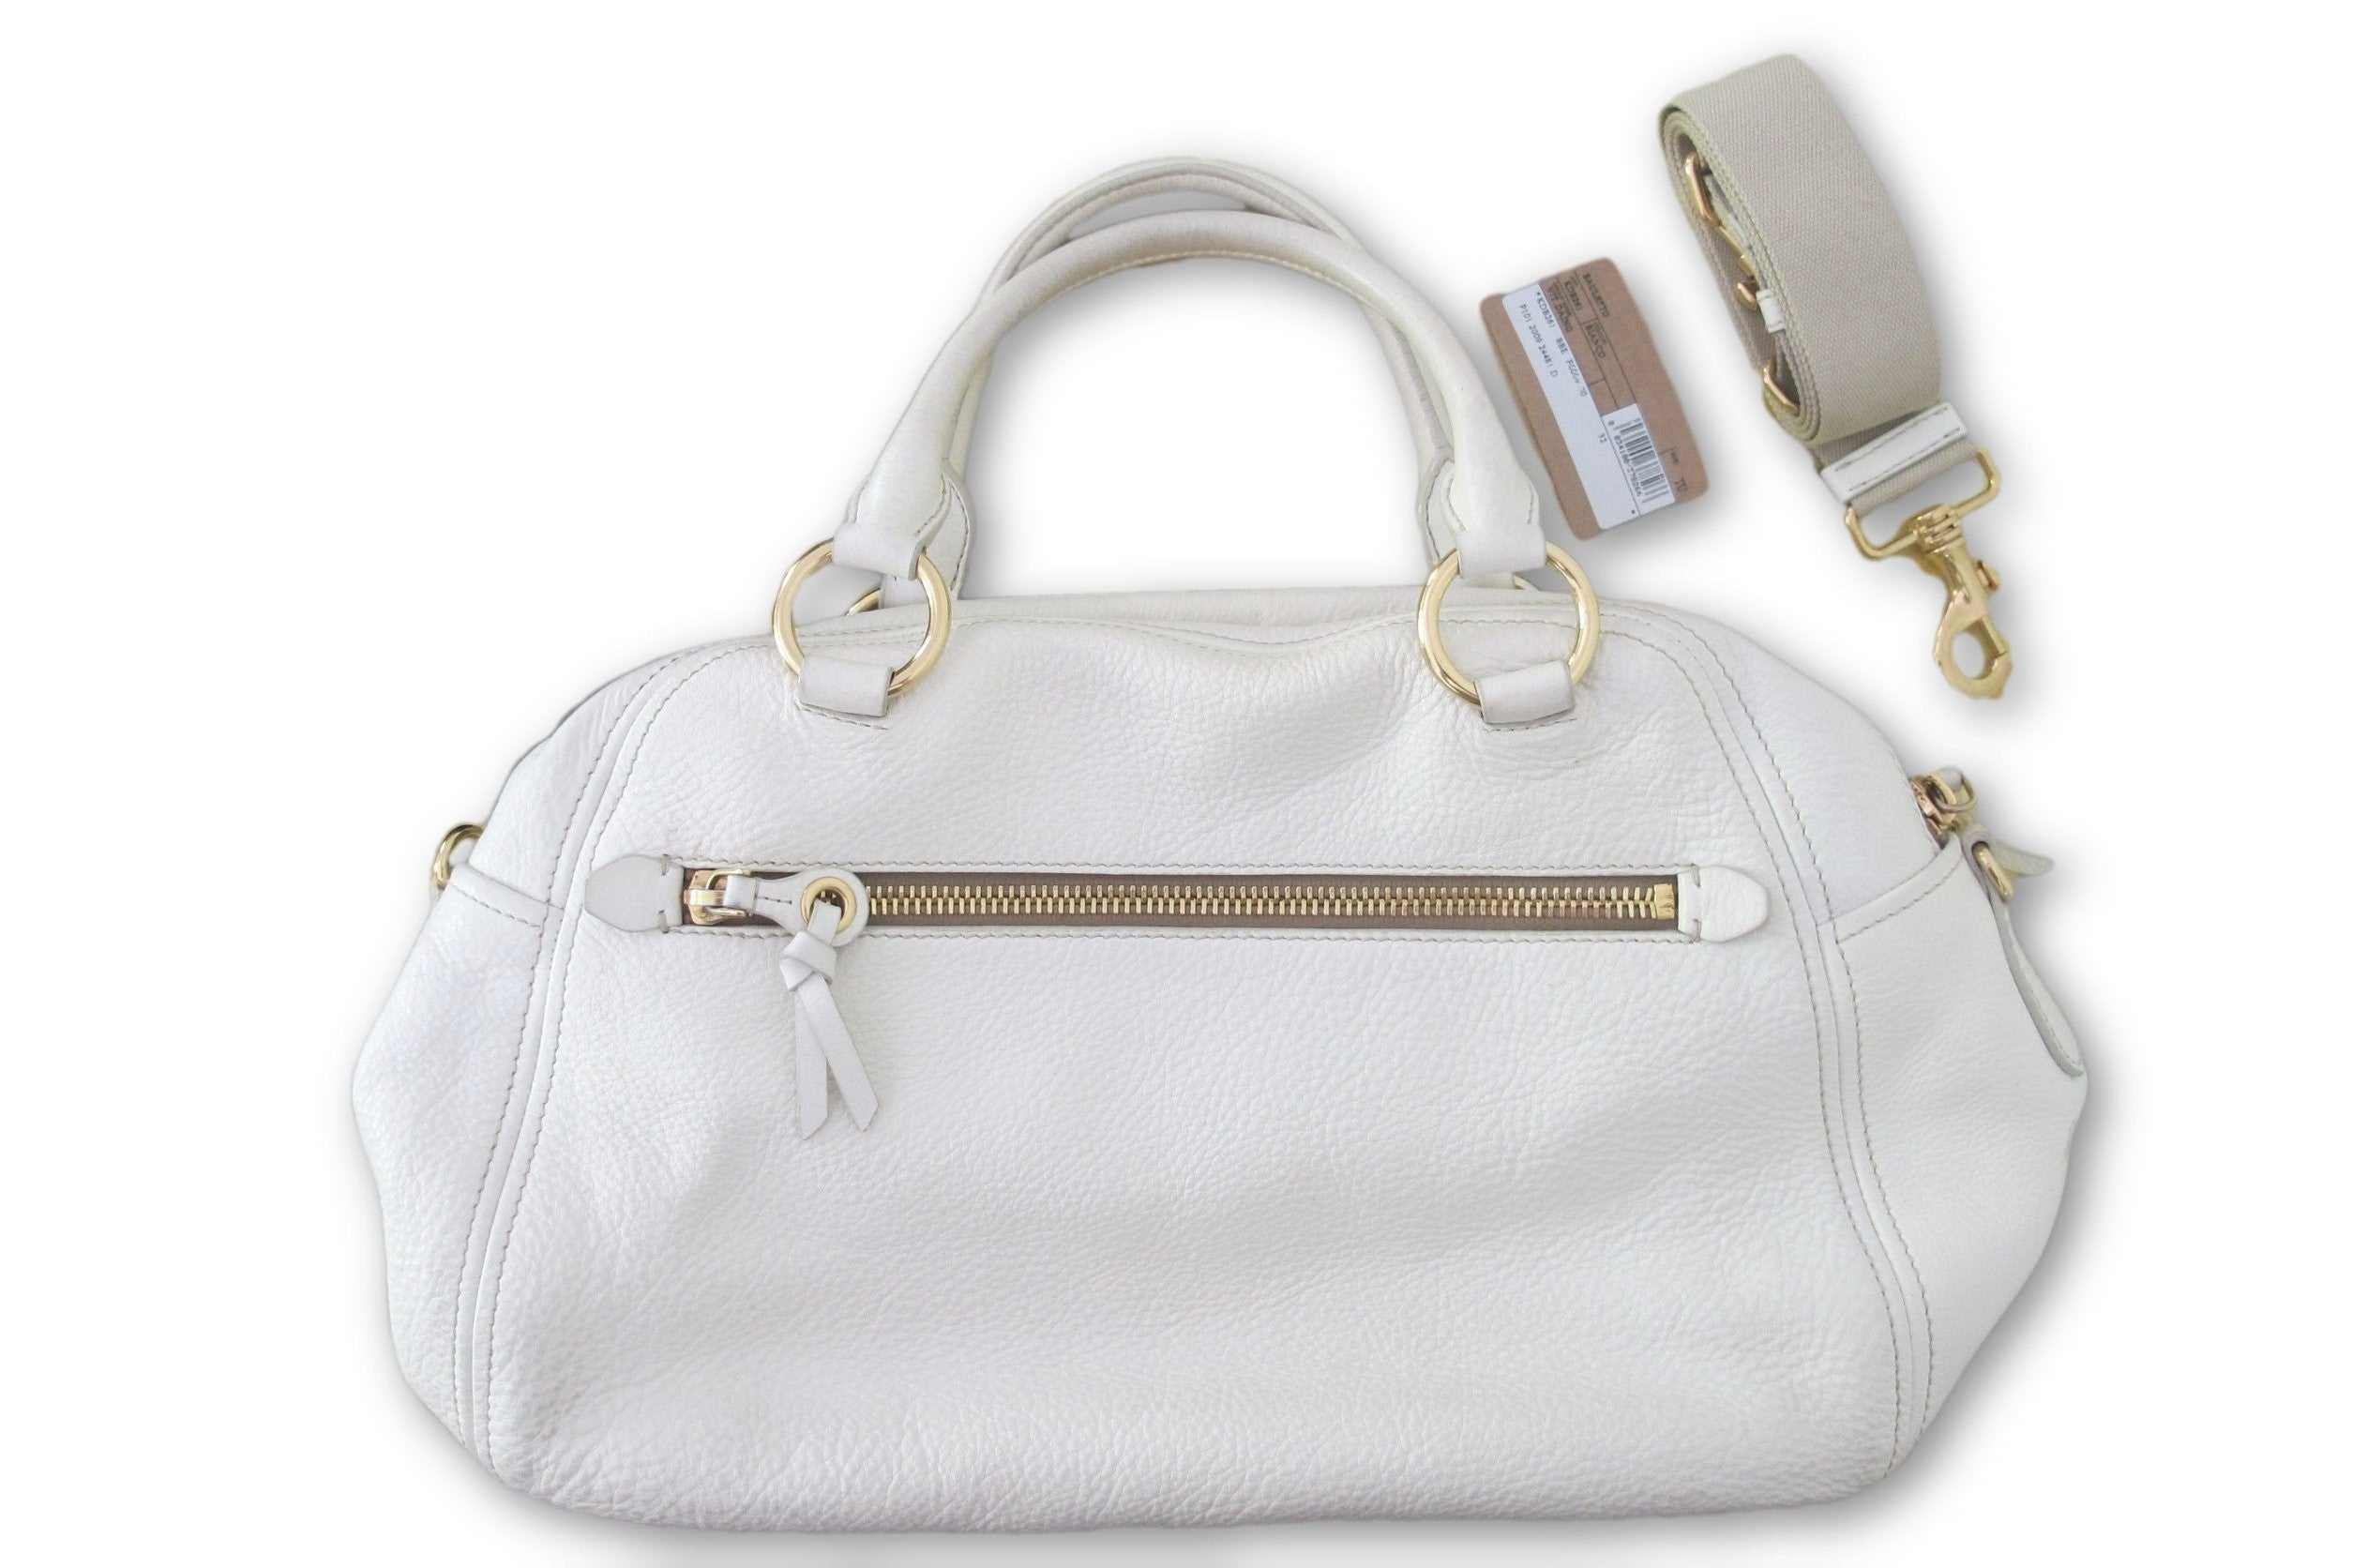 f8bdbe12fc90 ... White Very Good Condition Size Large Shoulder Sack Original Dust Bag Leather  Hobo Gold-tone